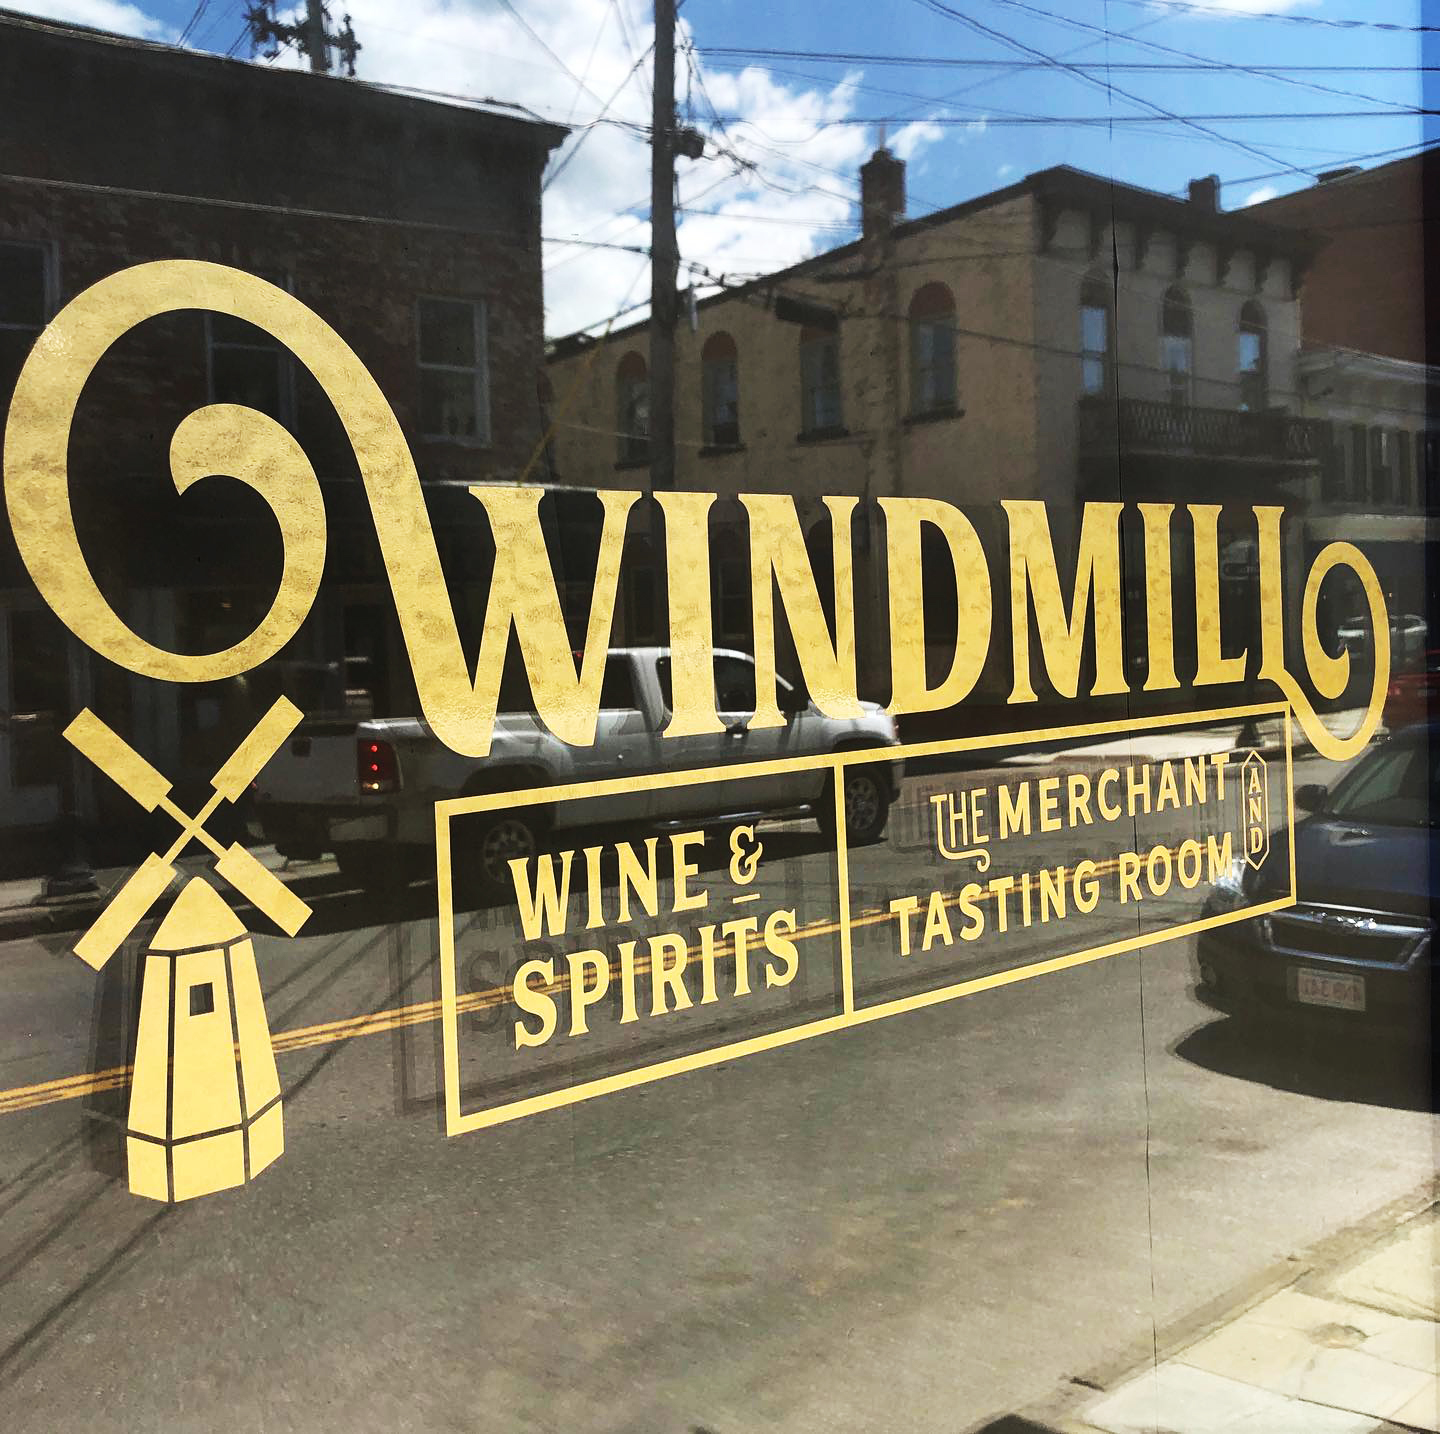 Windmill Wine & Spirits Exterior/Window Sign